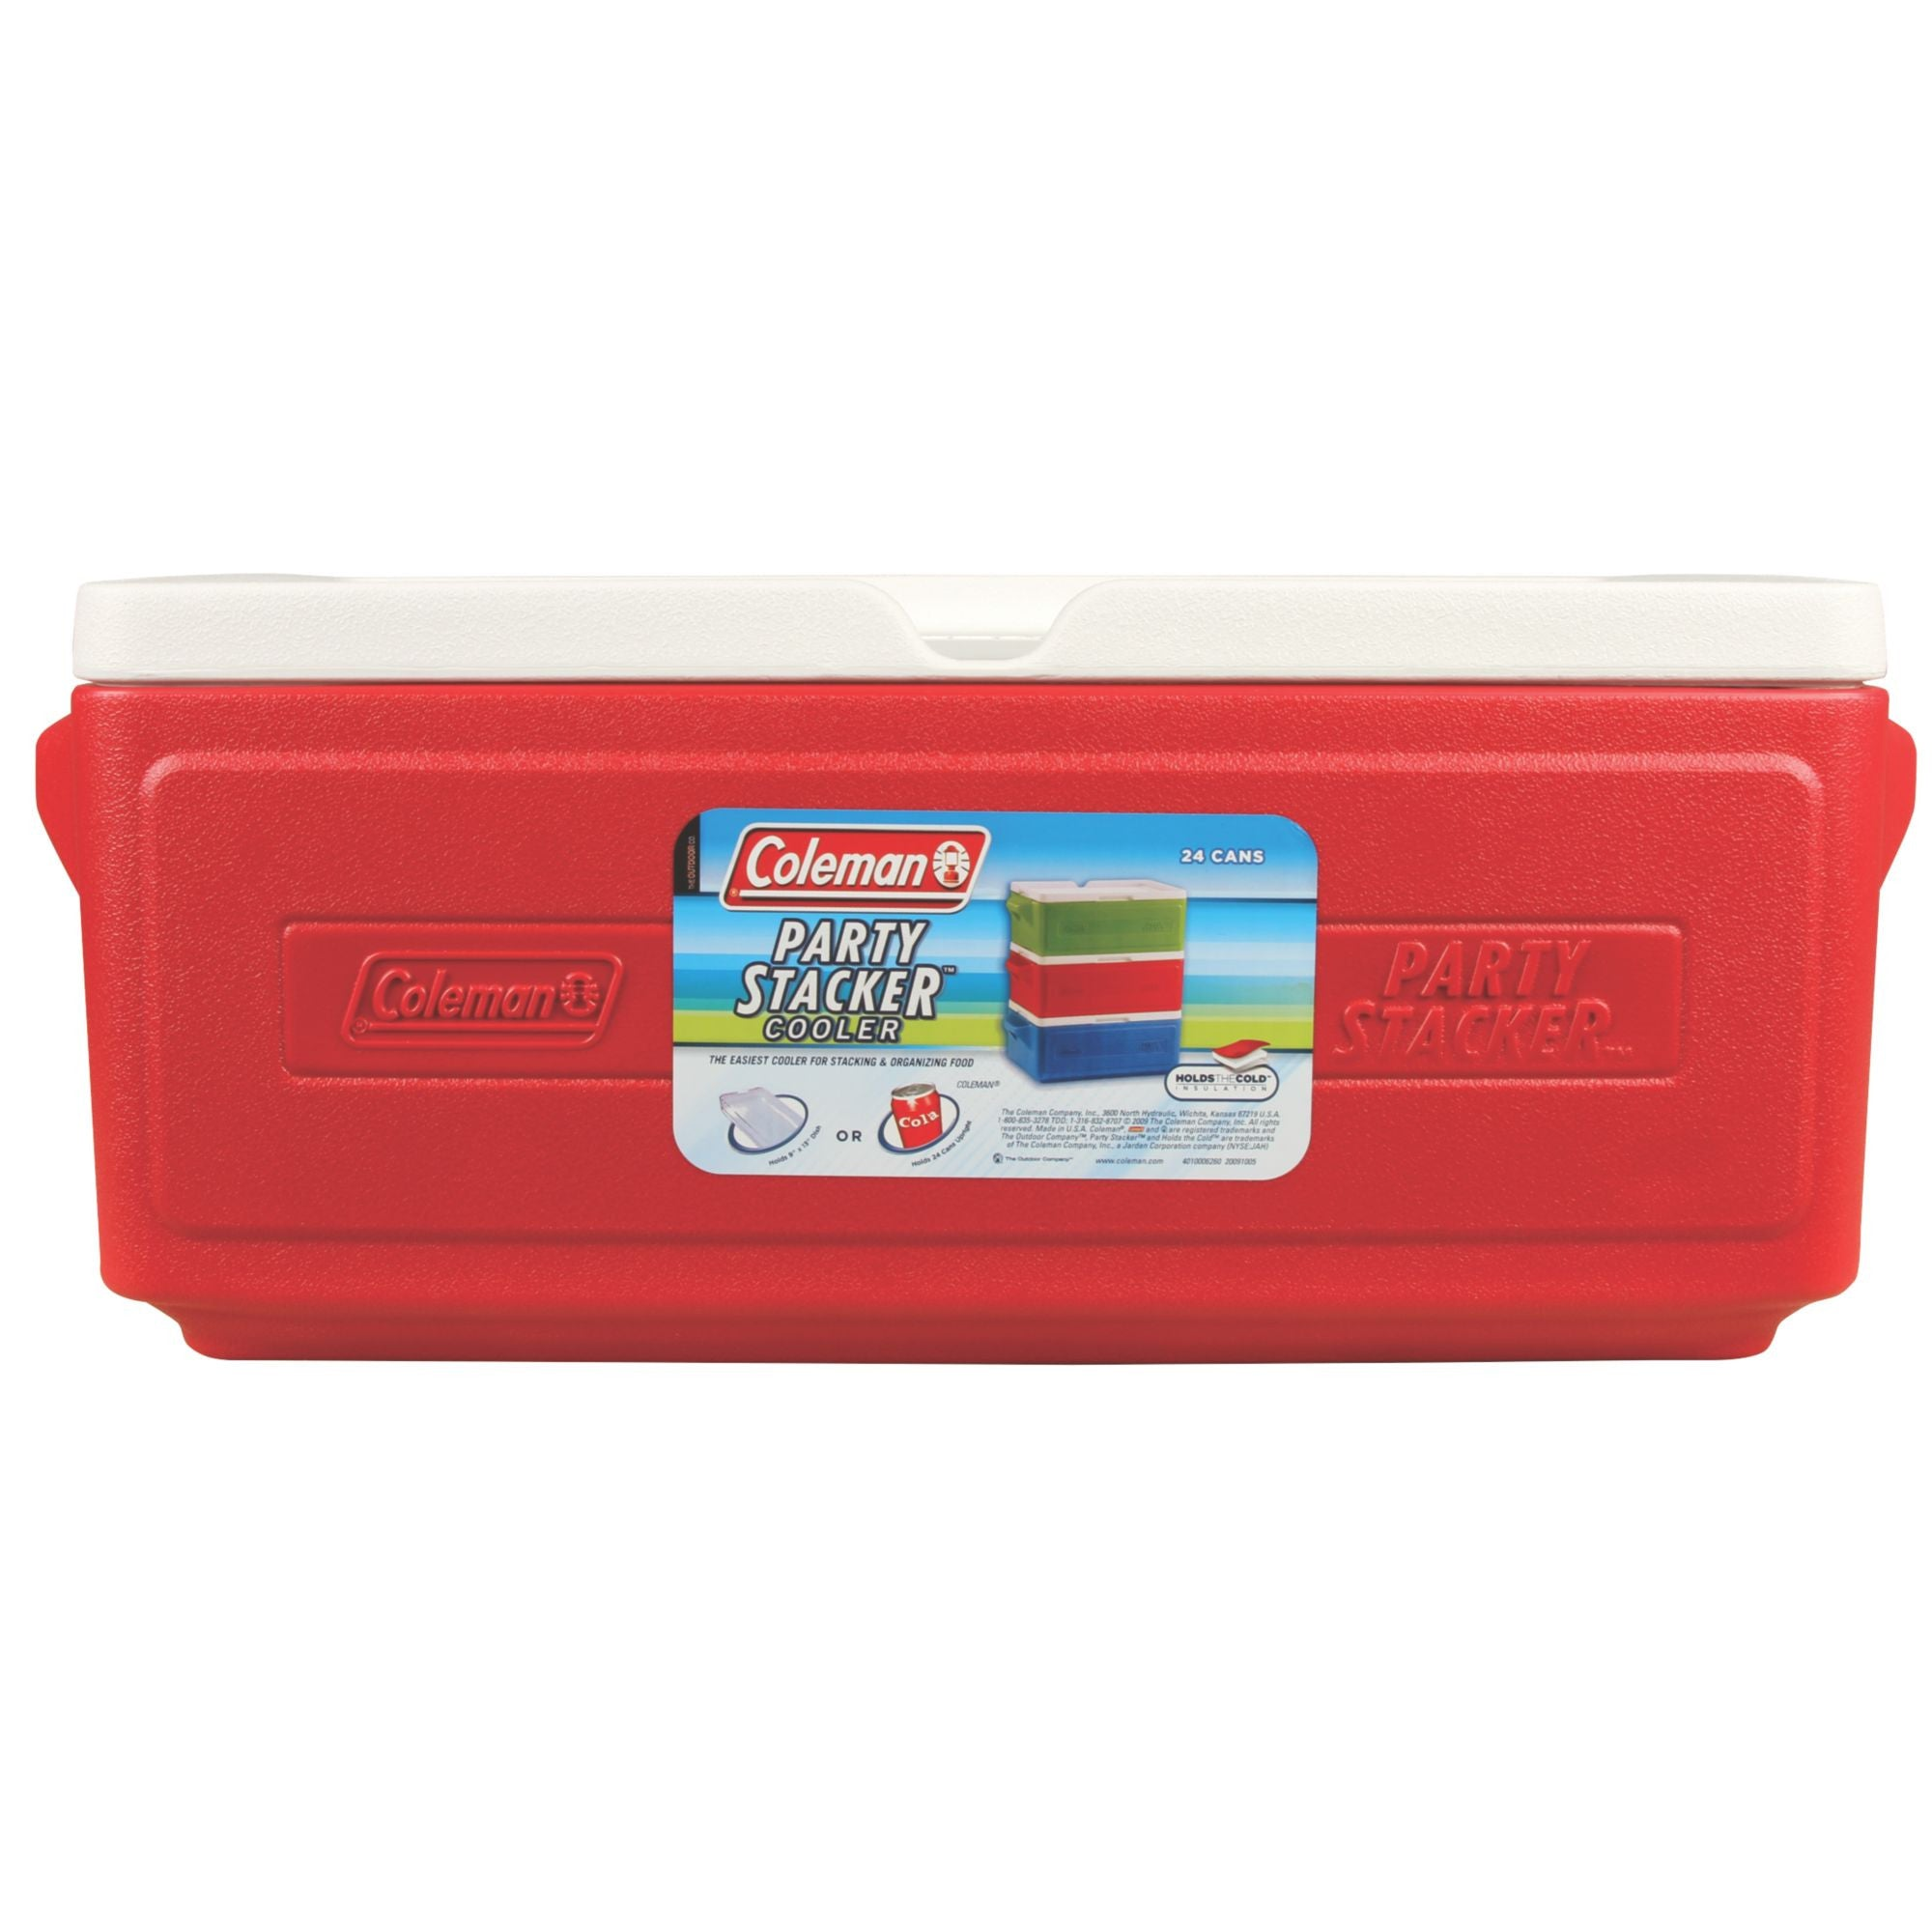 Coleman 24 Can Stacker Cooler Red - Ayudh Sports LLP  - 2